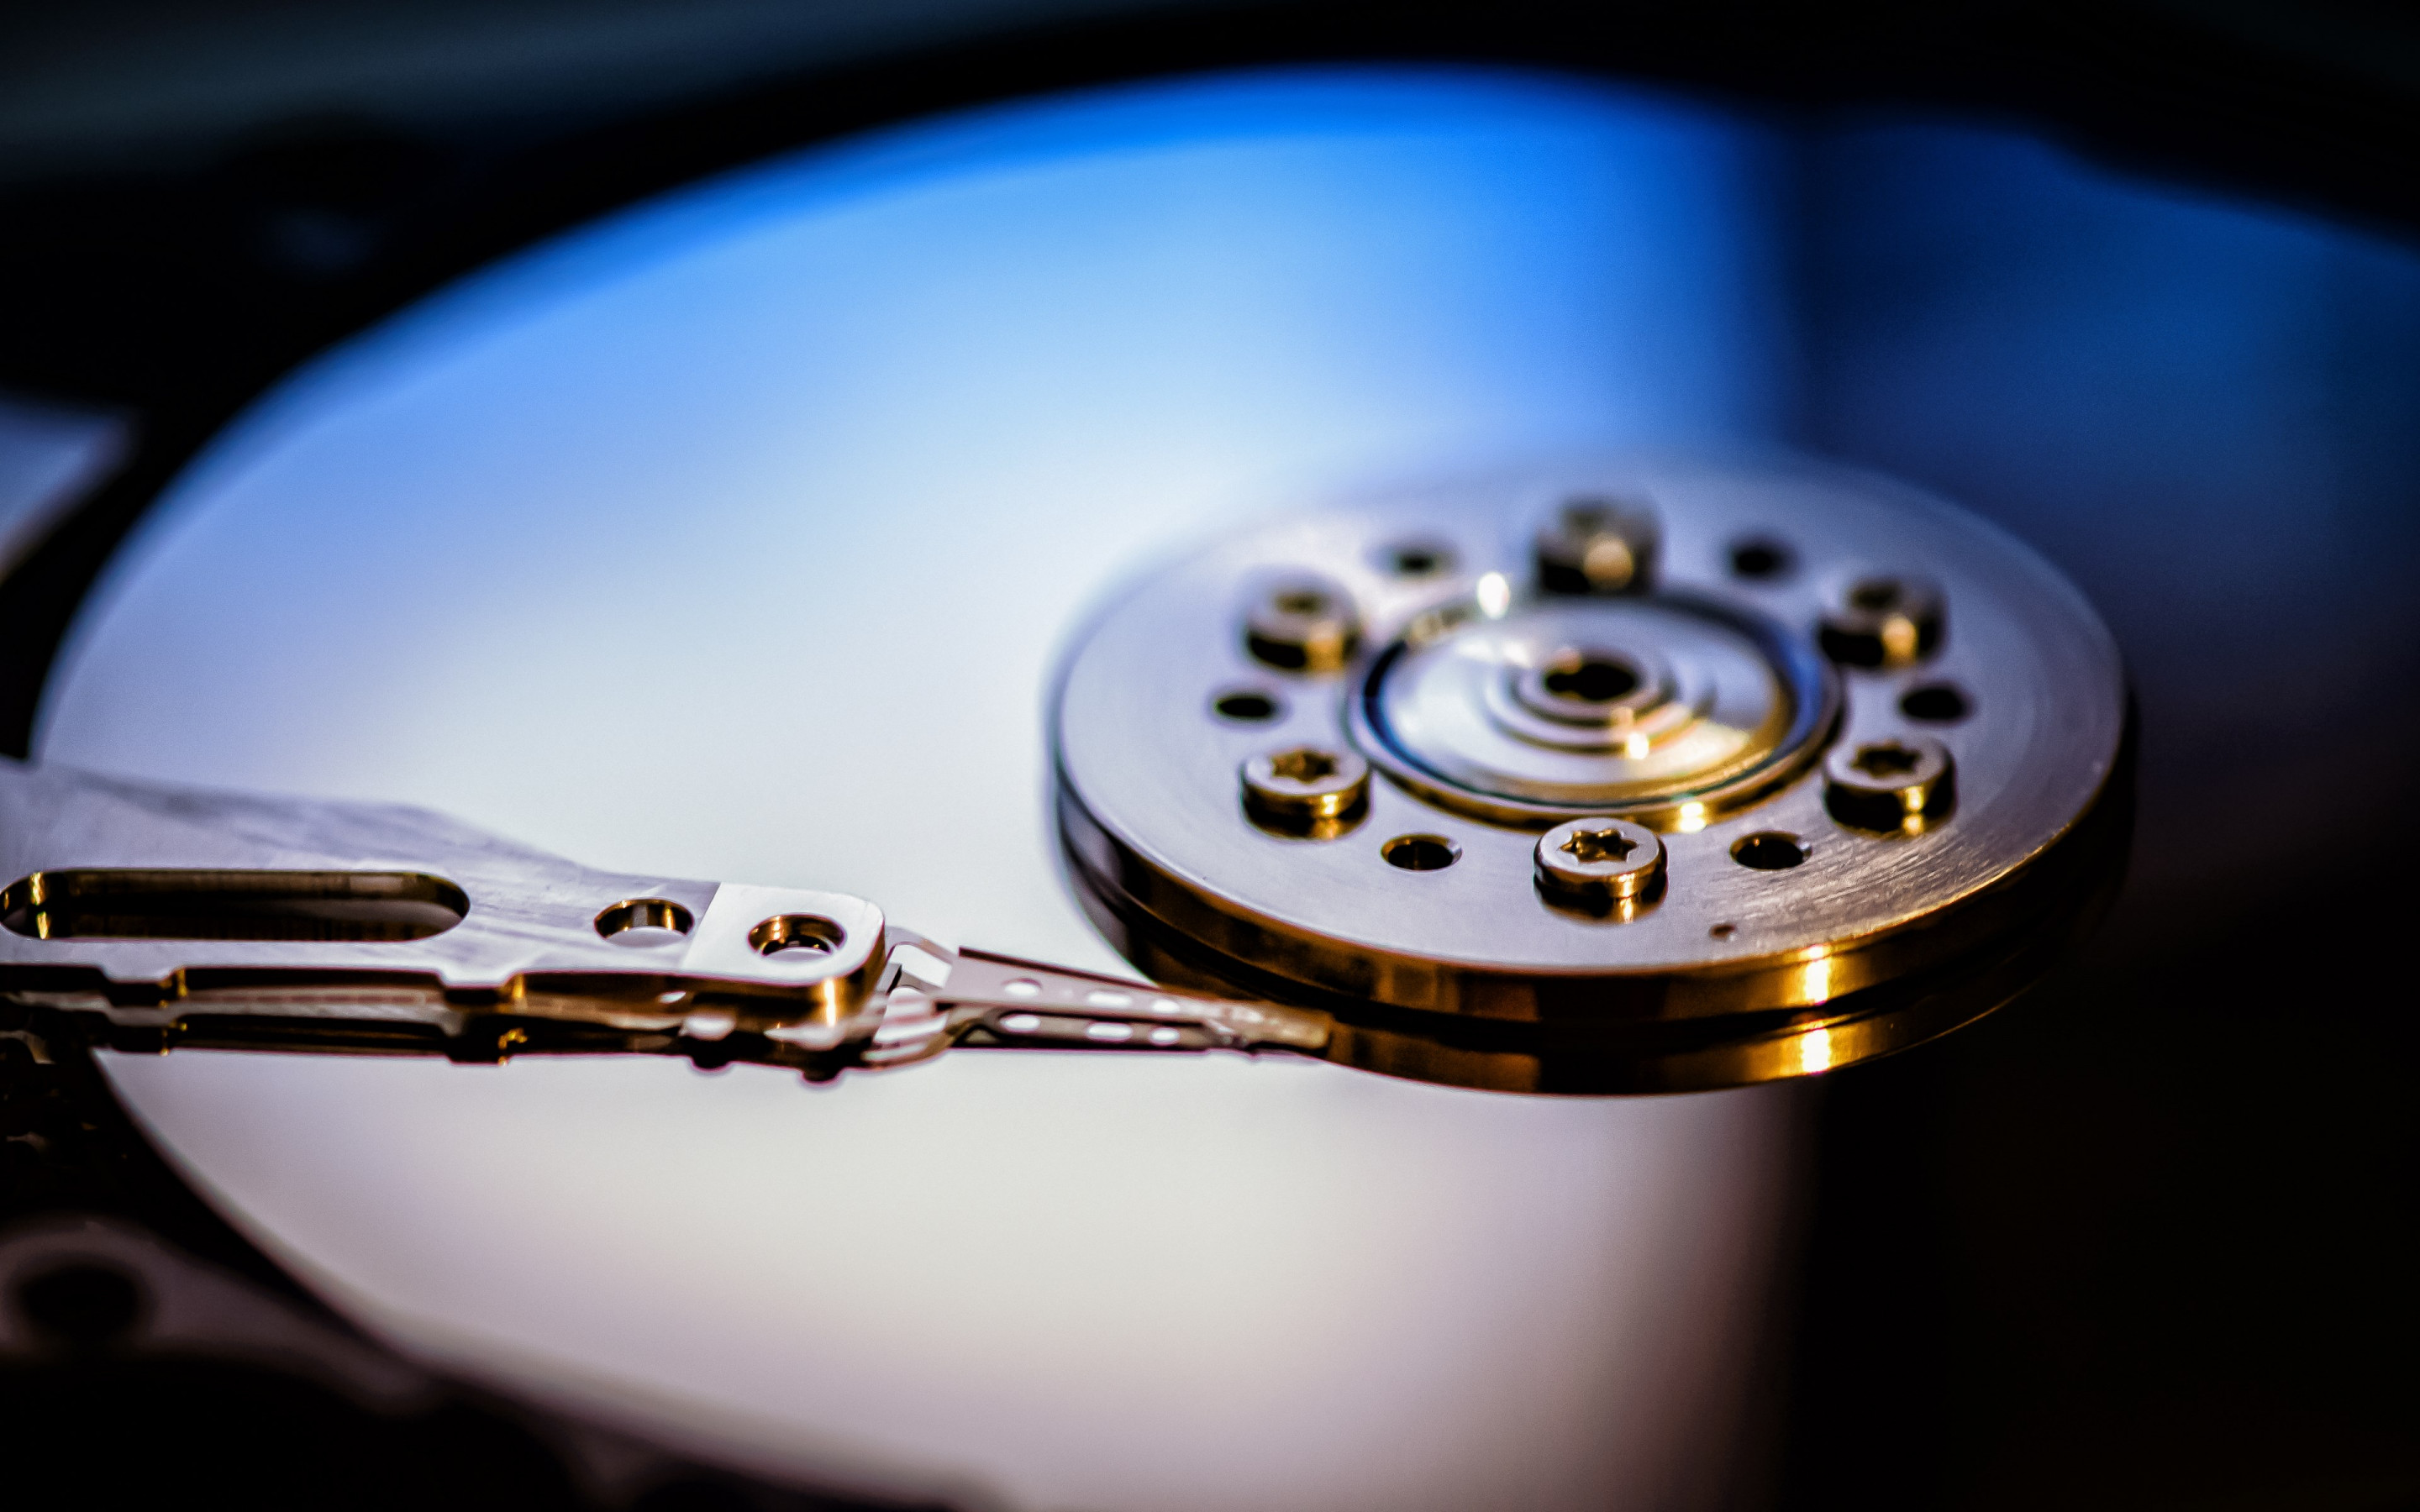 Hard disk drive wallpaper 2880x1800